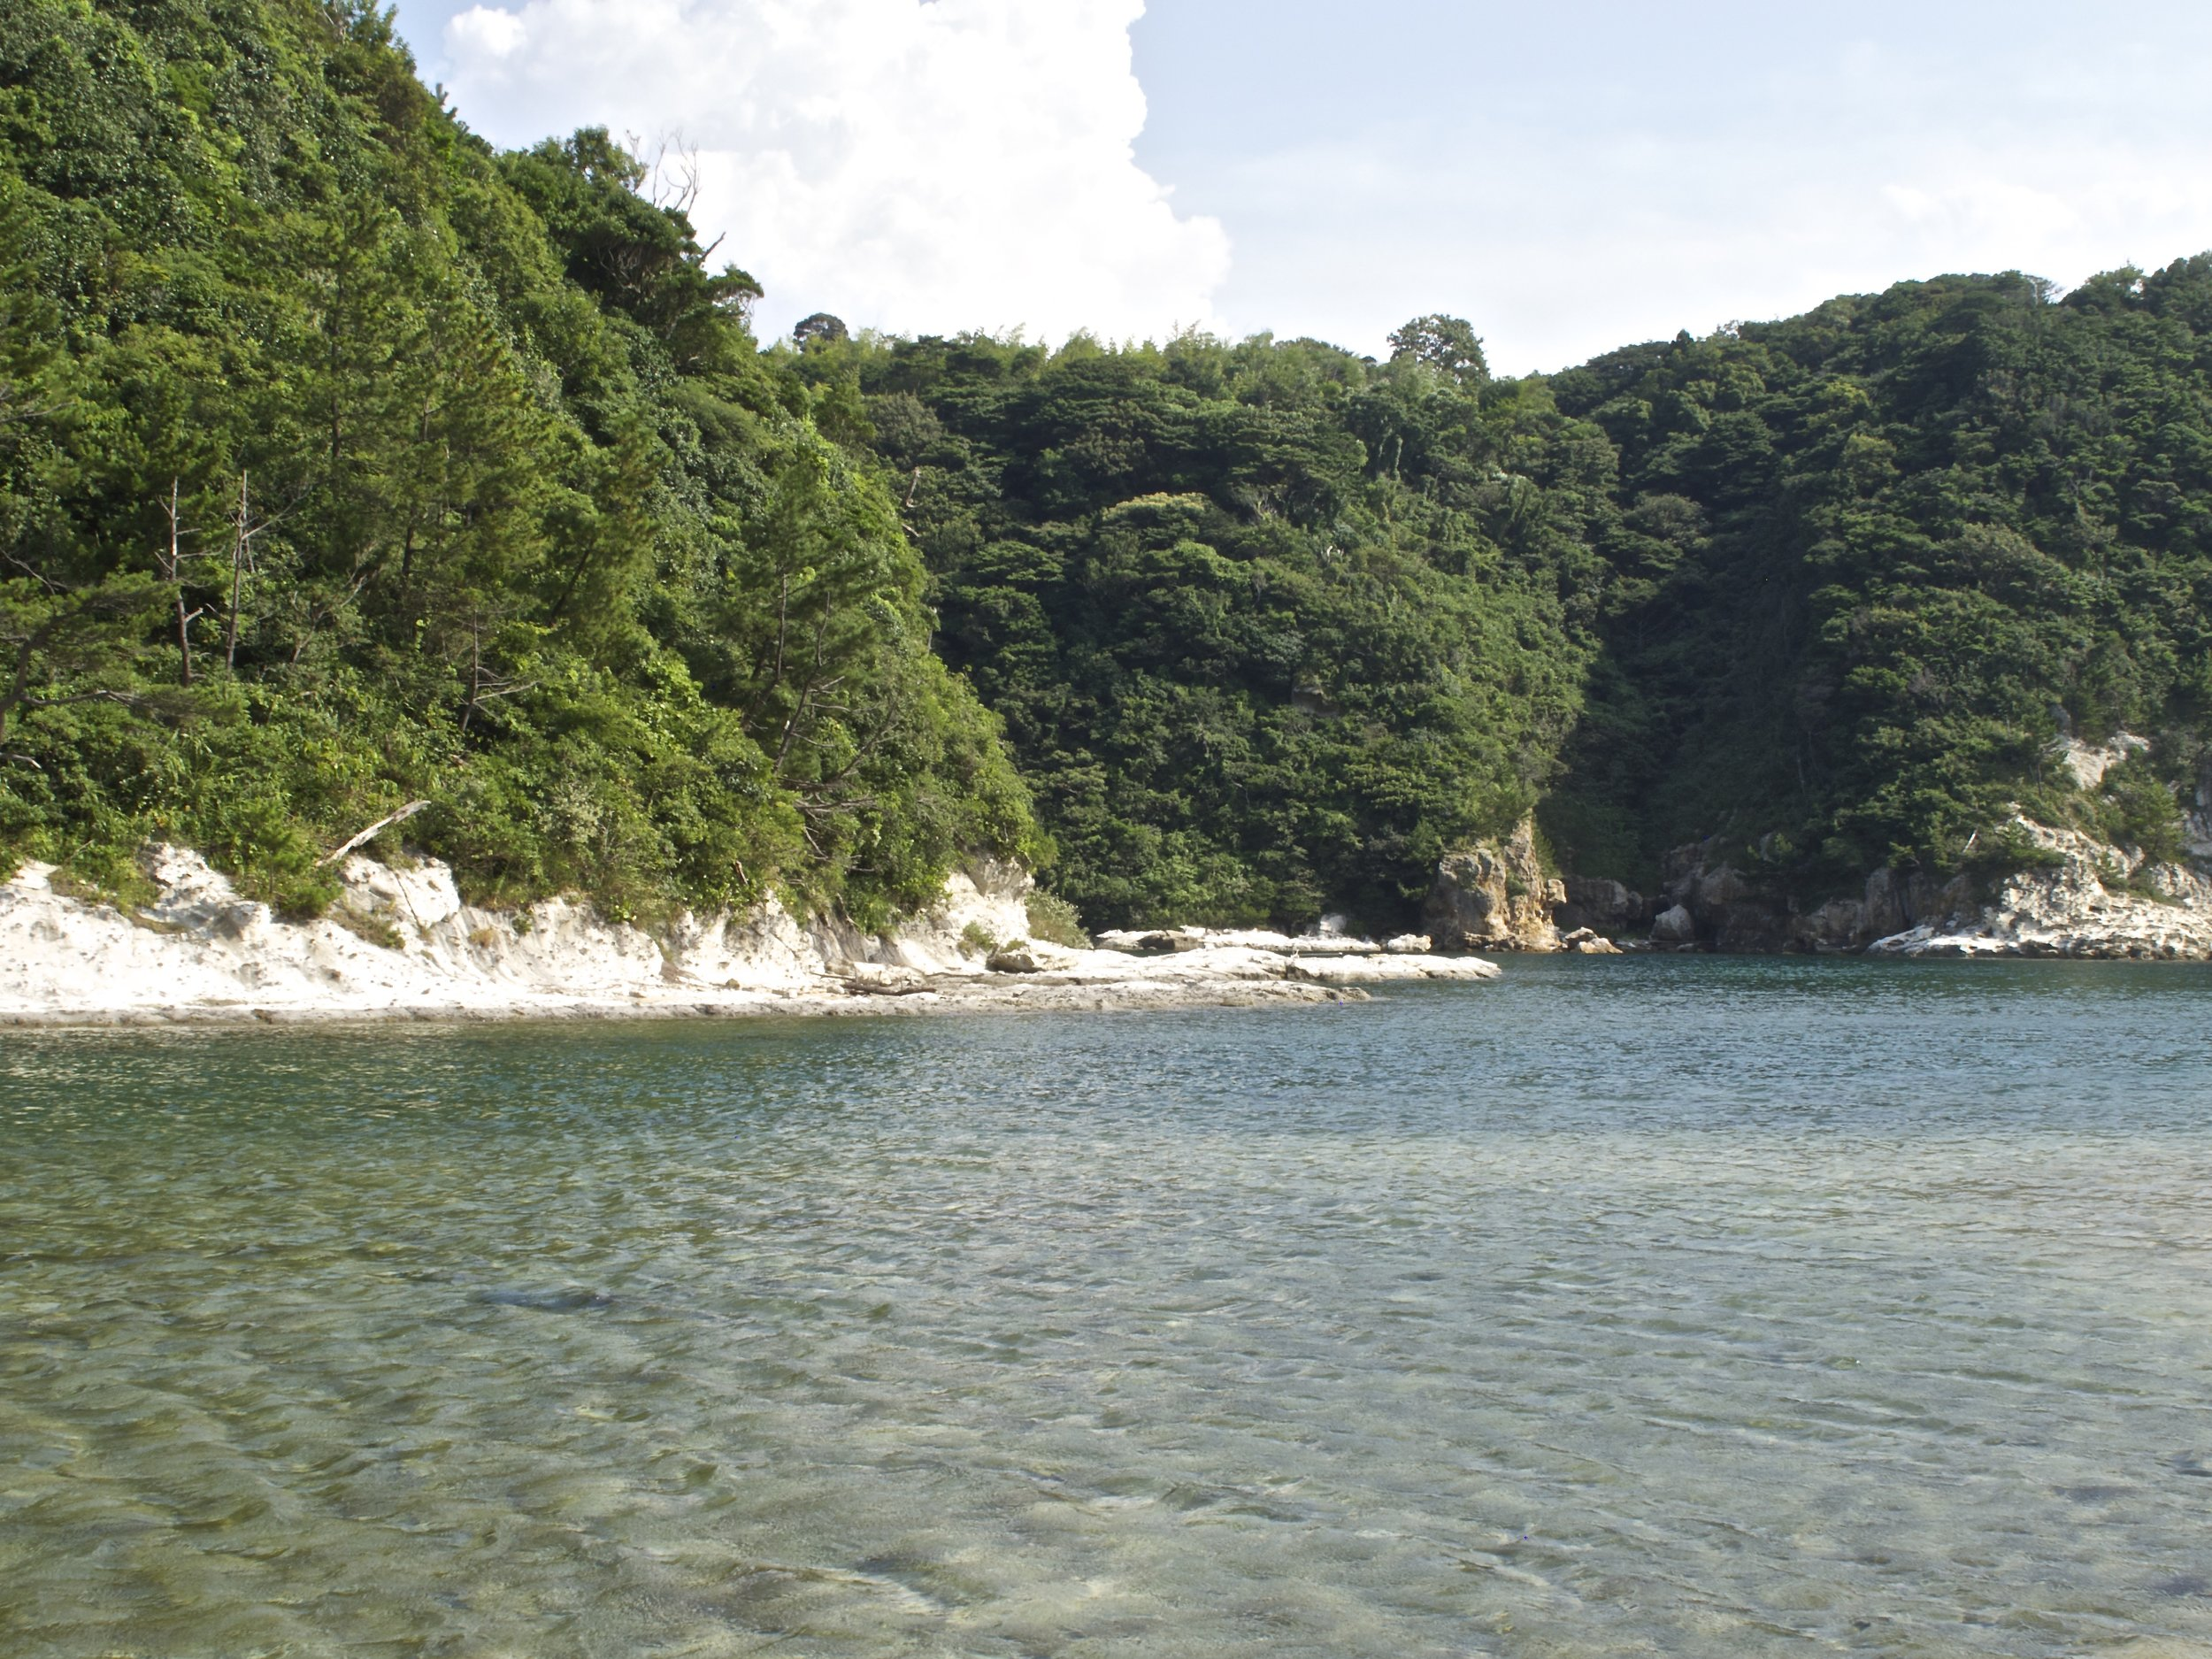 The hillocks and coves of the meandering harbor of Yunotsu Onsen, part of the Iwami Ginzan UNESCO World Heritage Site.